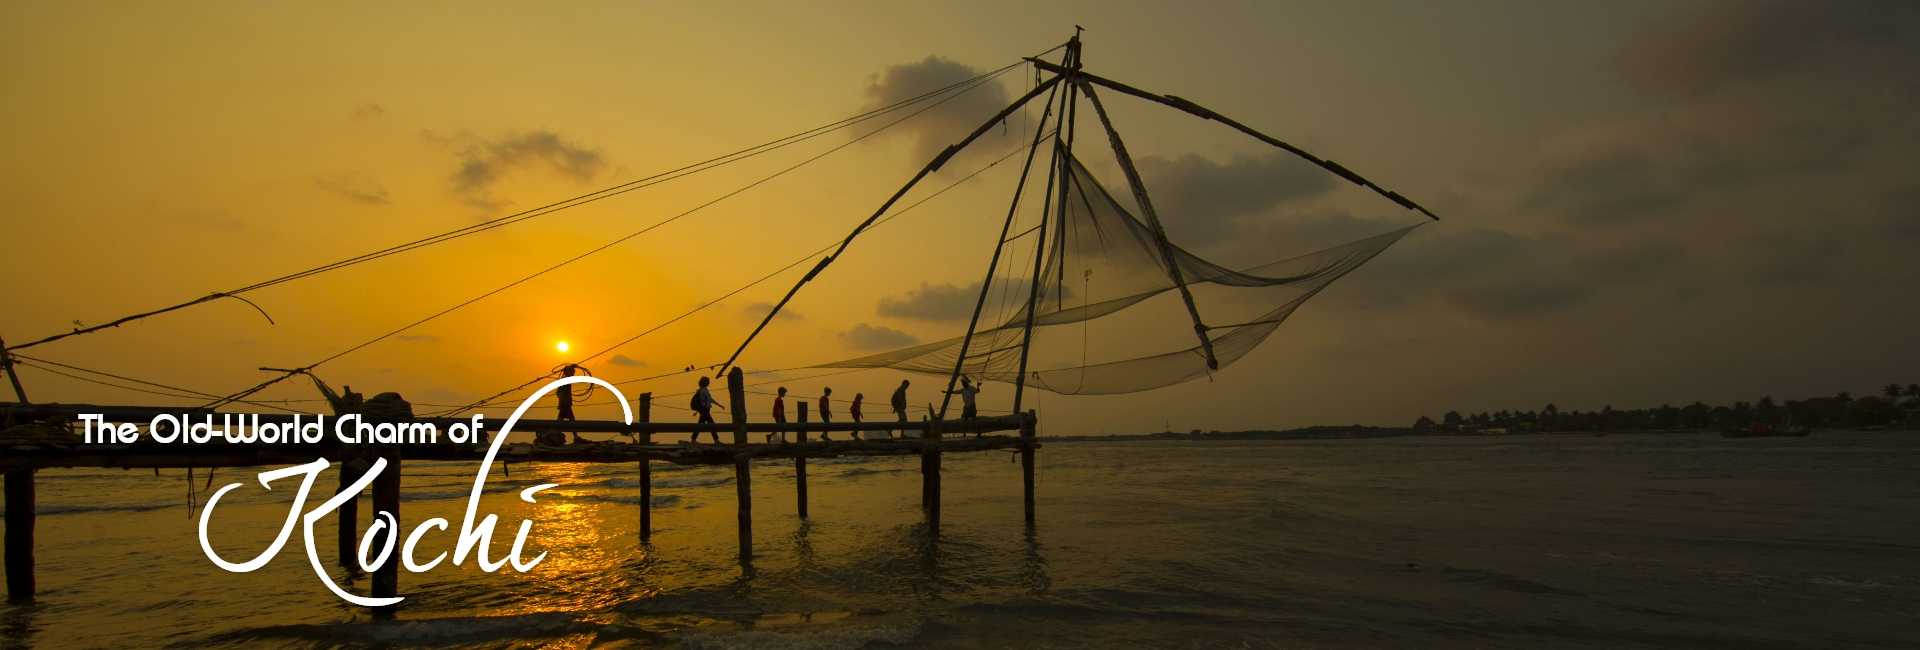 The Old-World Charm of Kochi